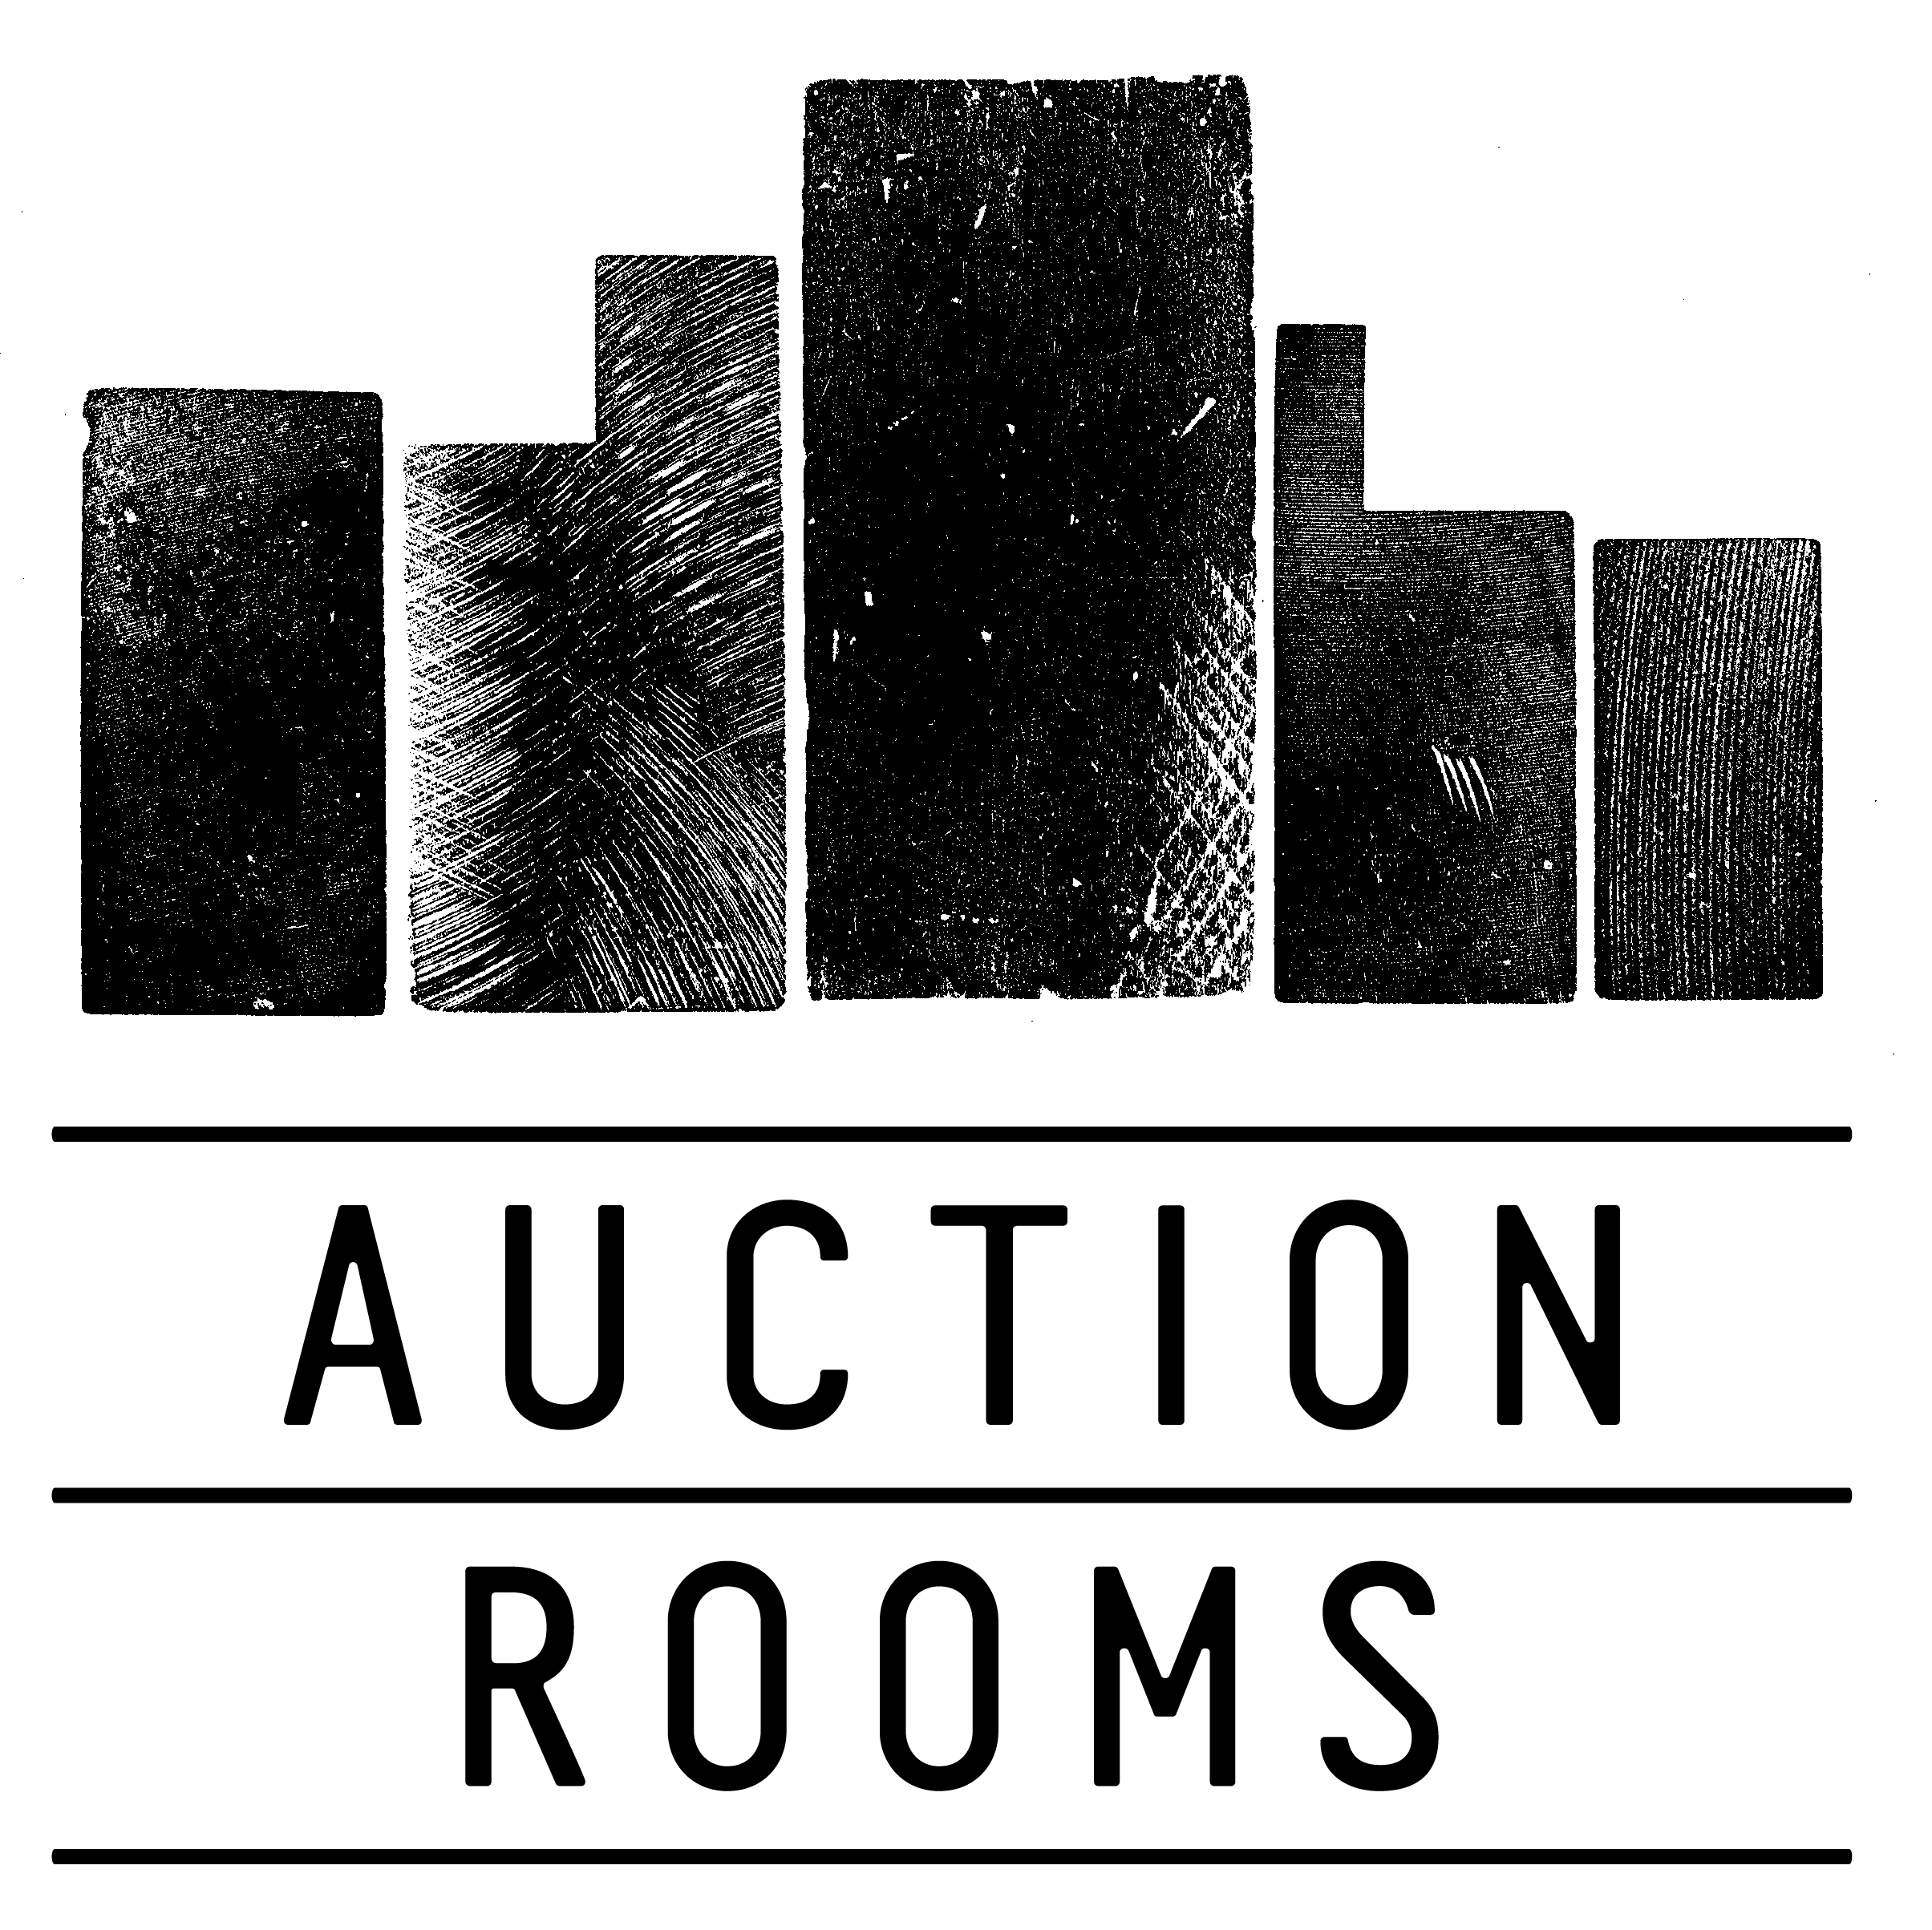 Auction Rooms